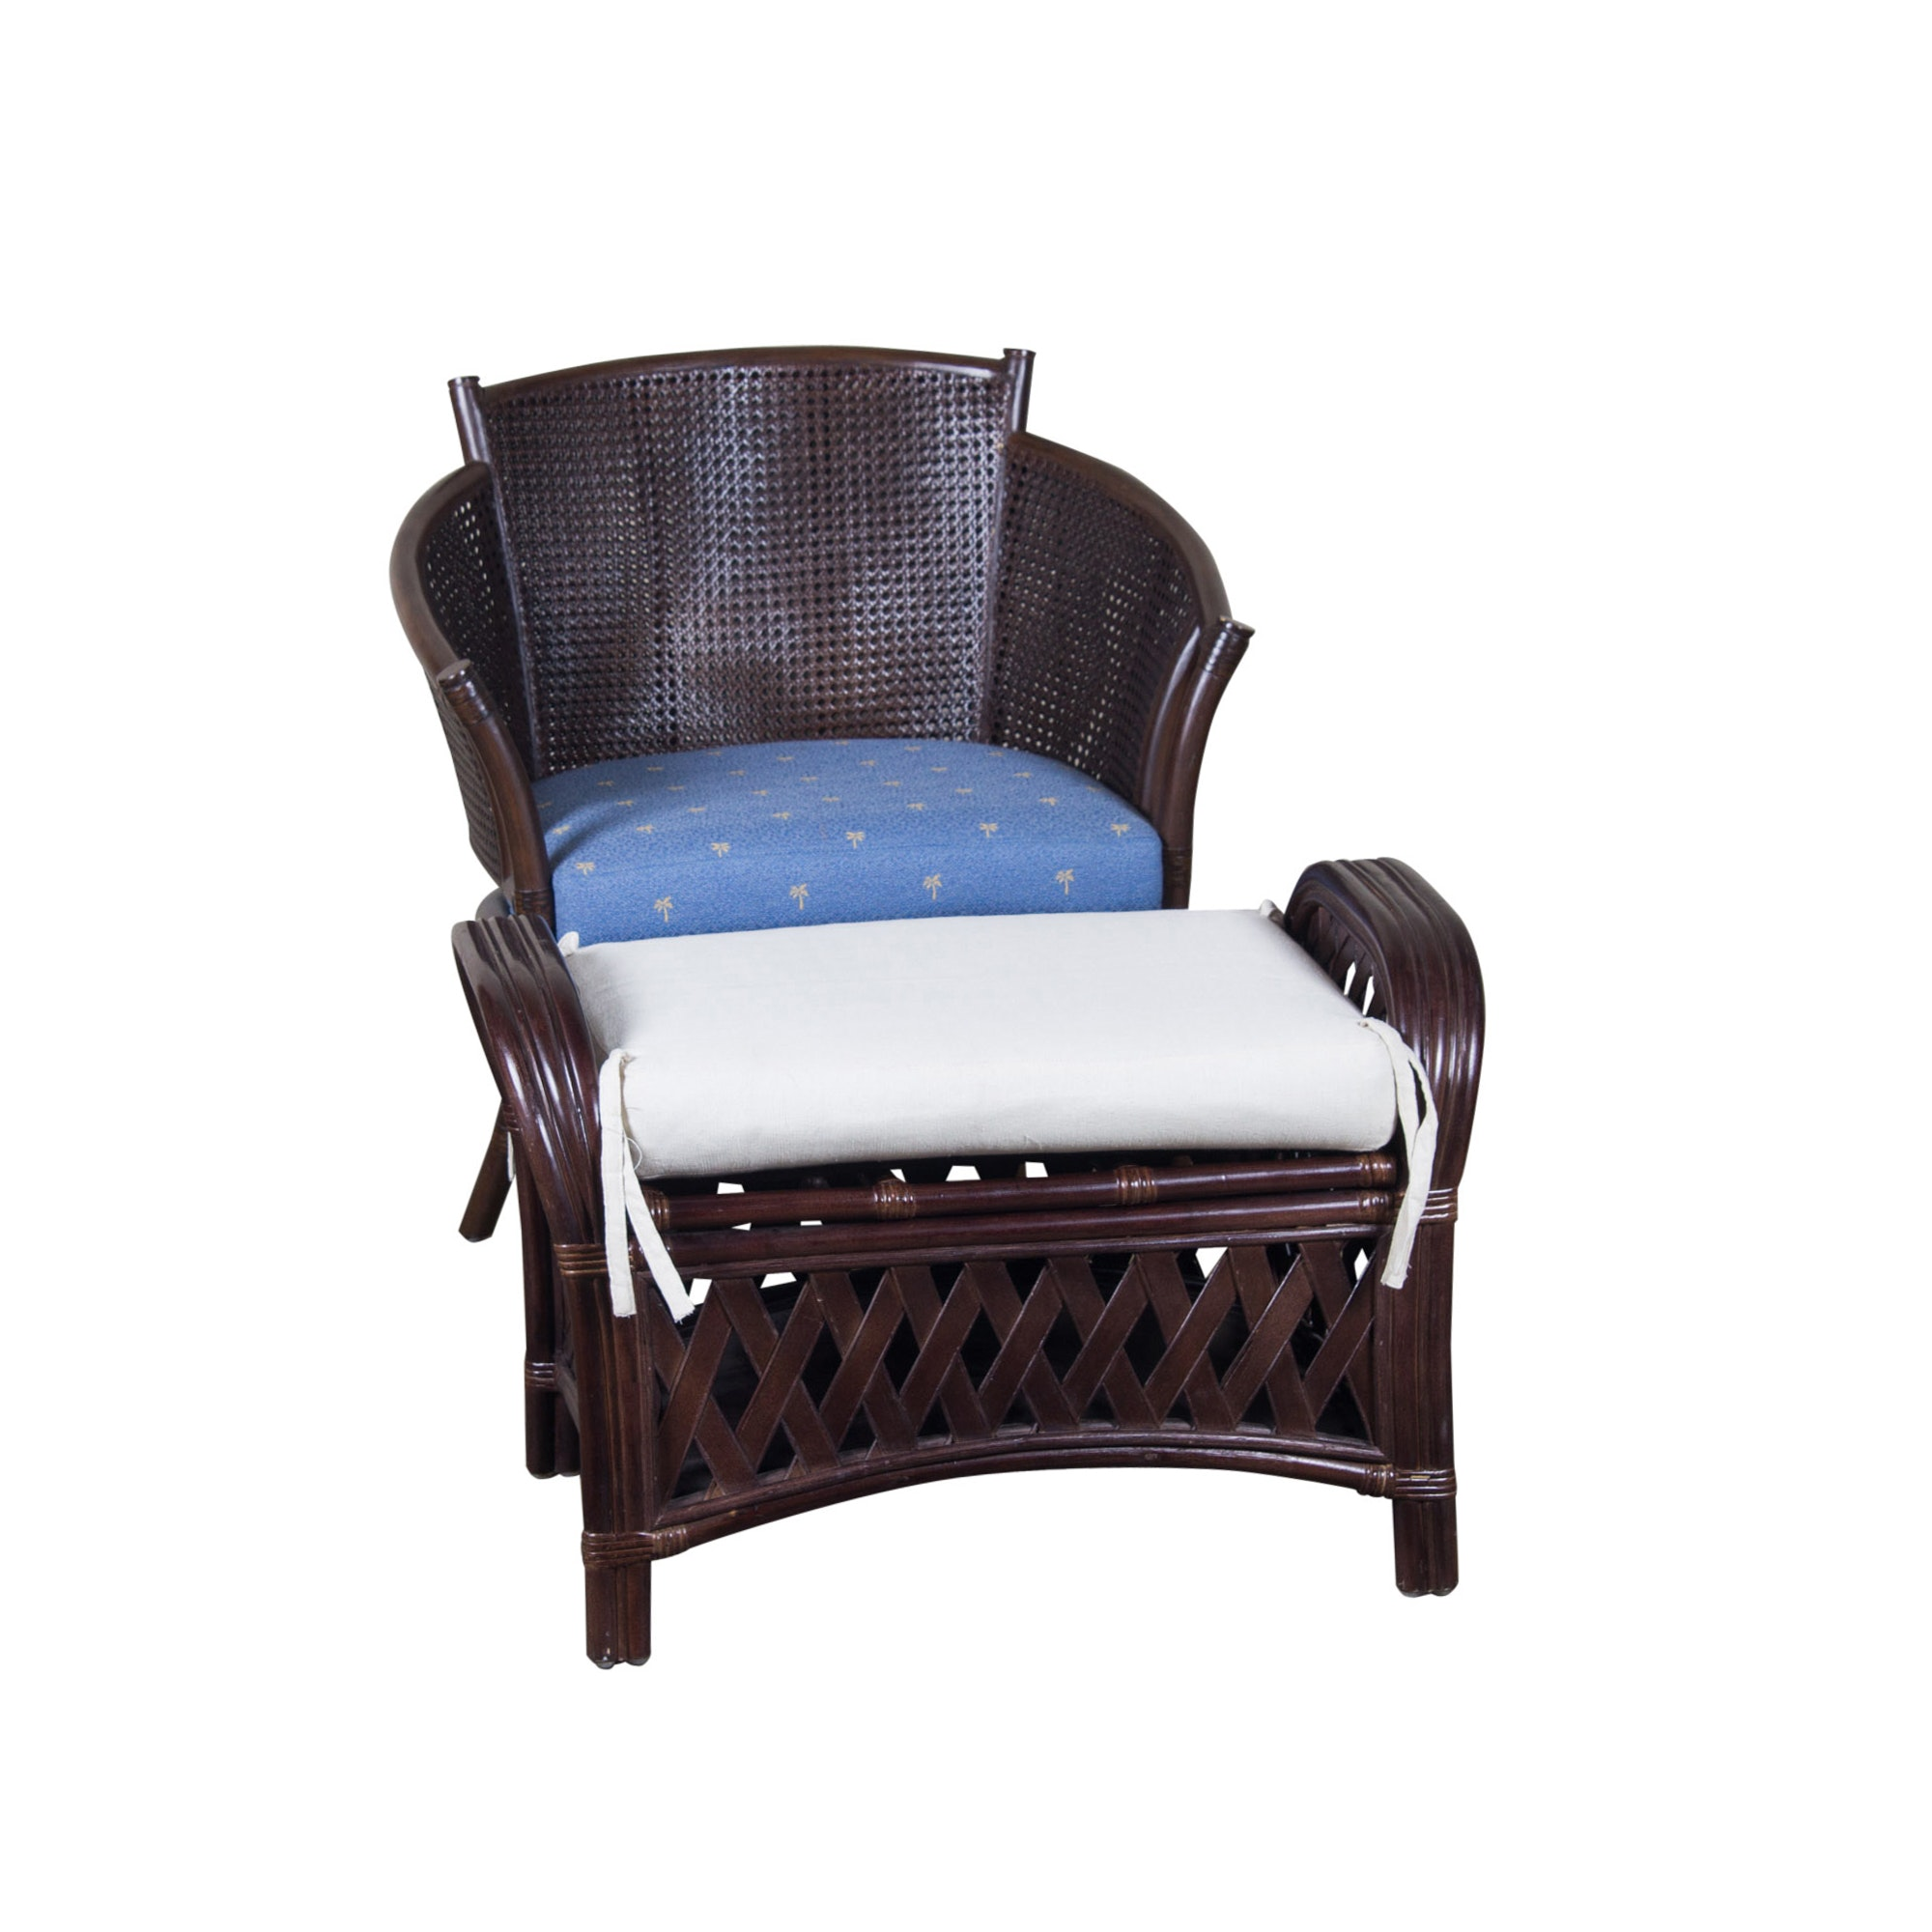 Over-Sized Ficks Reed Chair with Ottoman